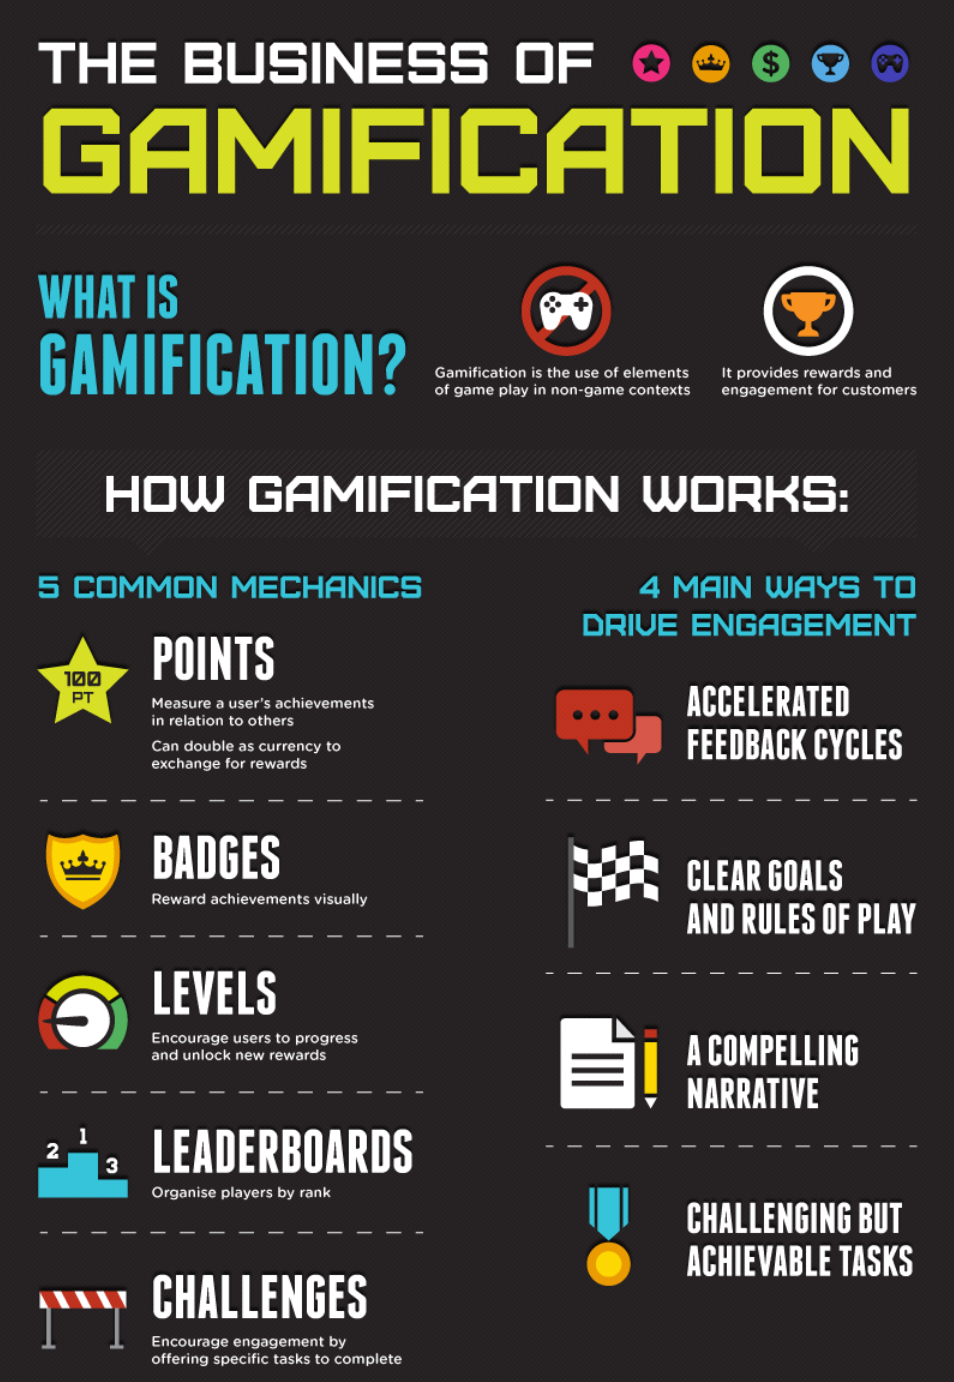 Pin on GBL & Gamification